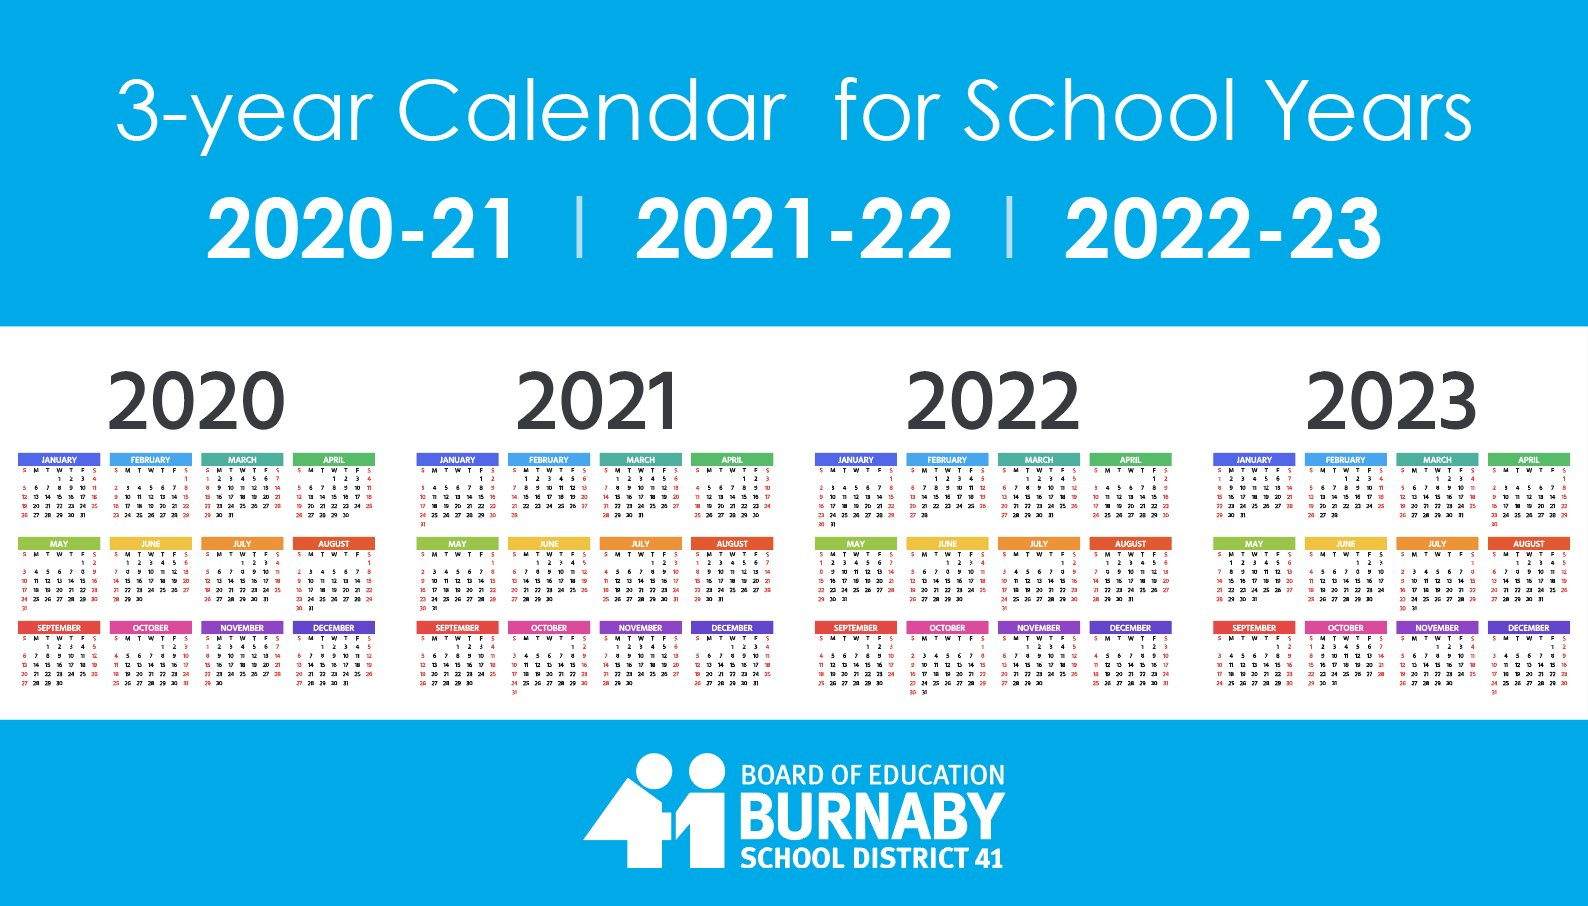 Cornell 2022 23 Calendar.Burnaby Schools On Twitter We Are Welcoming Feedback On The Burnabyschools 3 Year Calendar Proposed For Schools Years 2020 21 2021 22 And 2022 23 Learn More Https T Co Dimzjpiwyd Https T Co 8rej9oeael